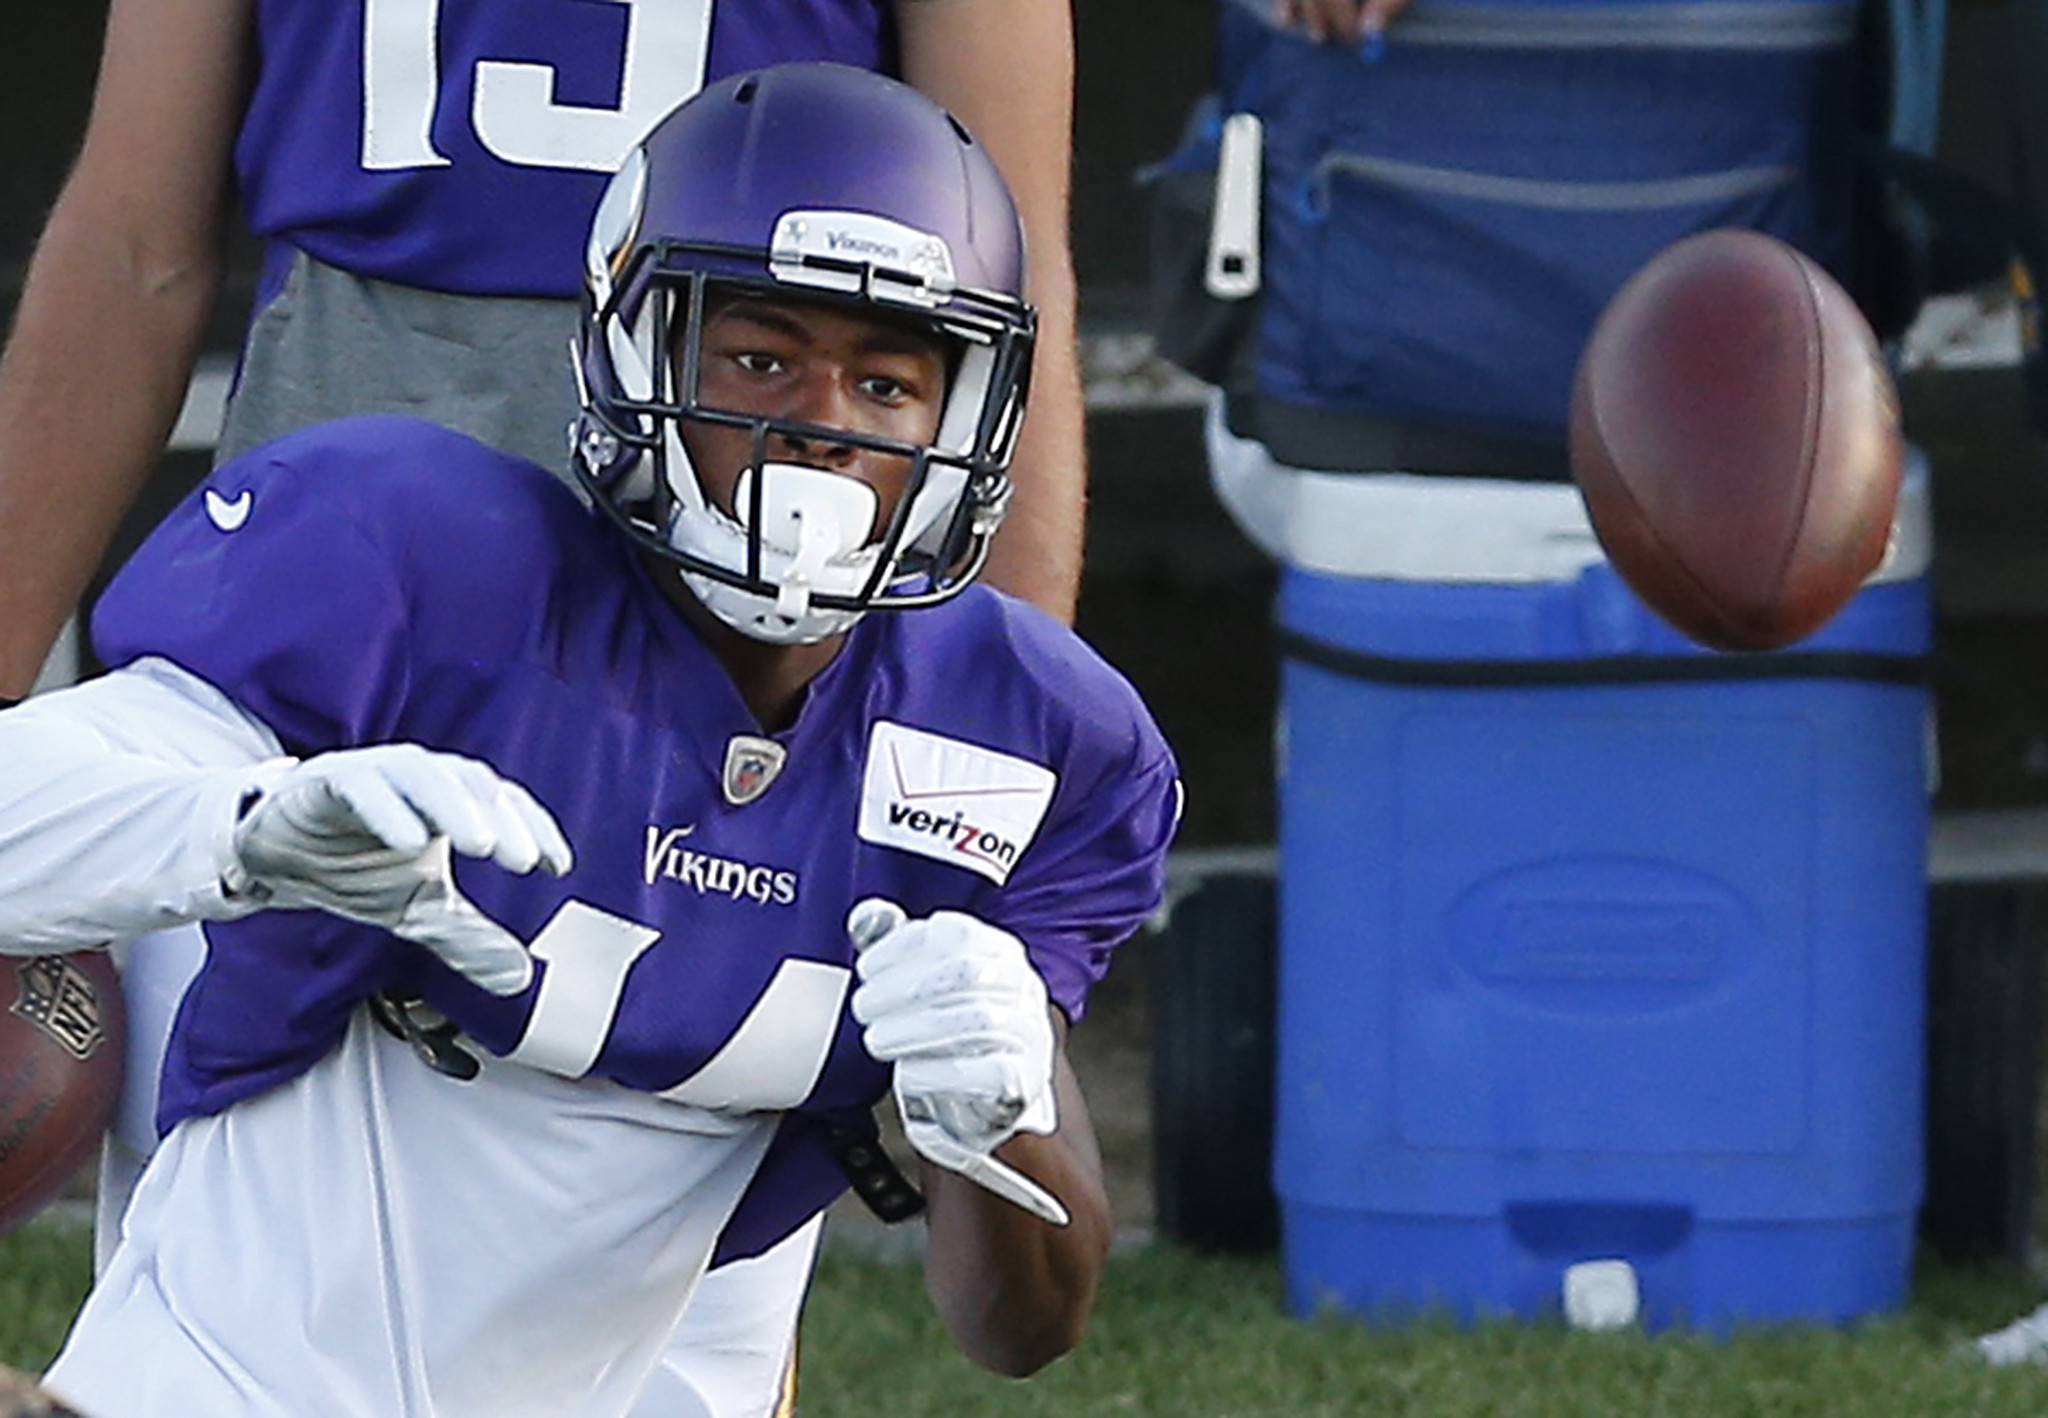 Former Terps wide receiver Stefon Diggs named NFL Rookie of the